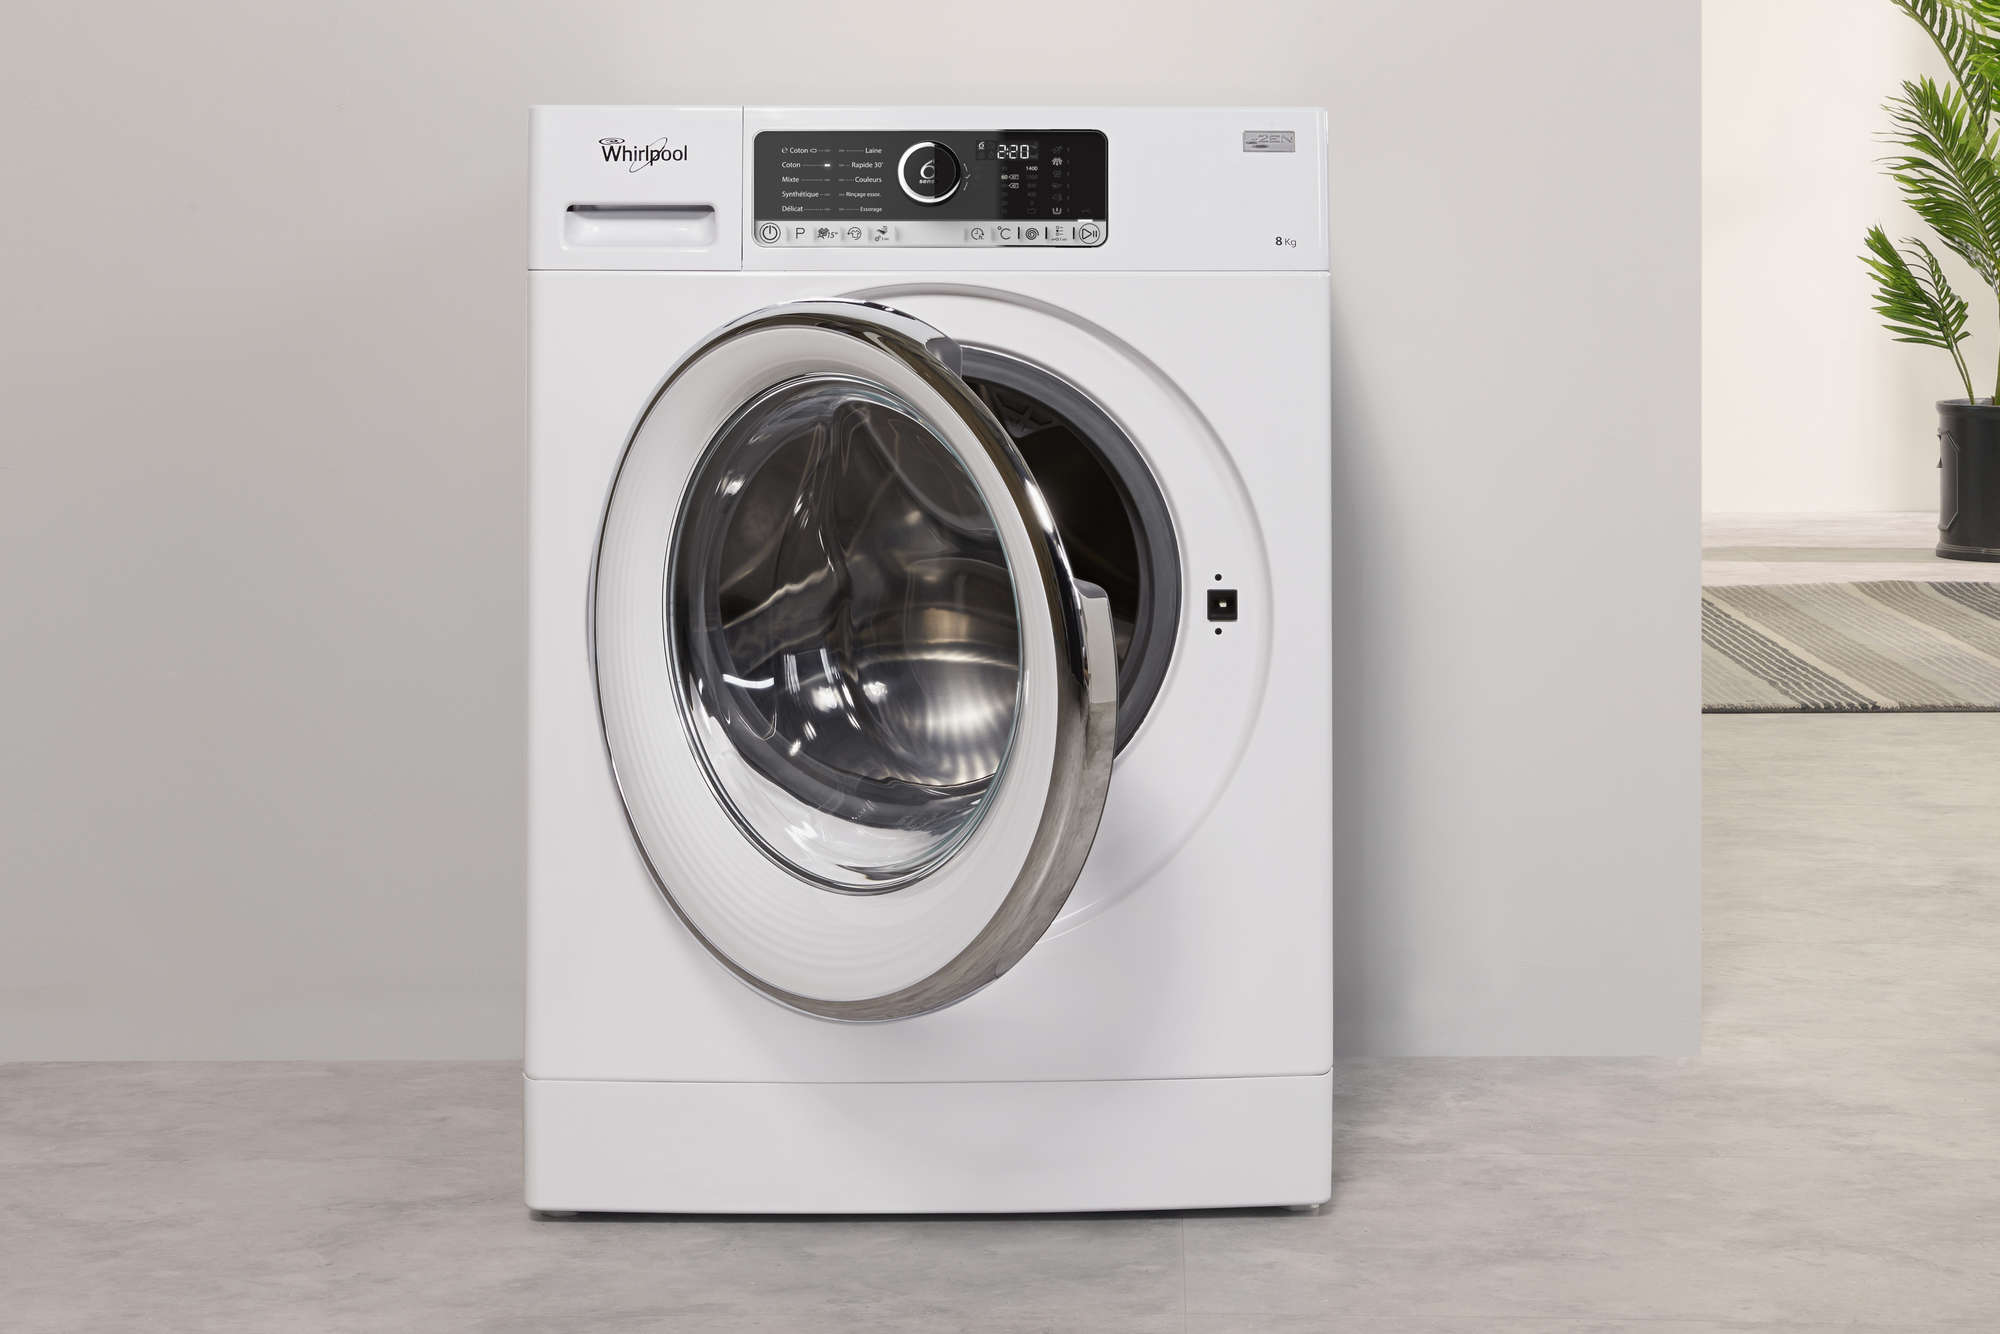 lave linge hublot whirlpool fscr80421 supreme care | darty